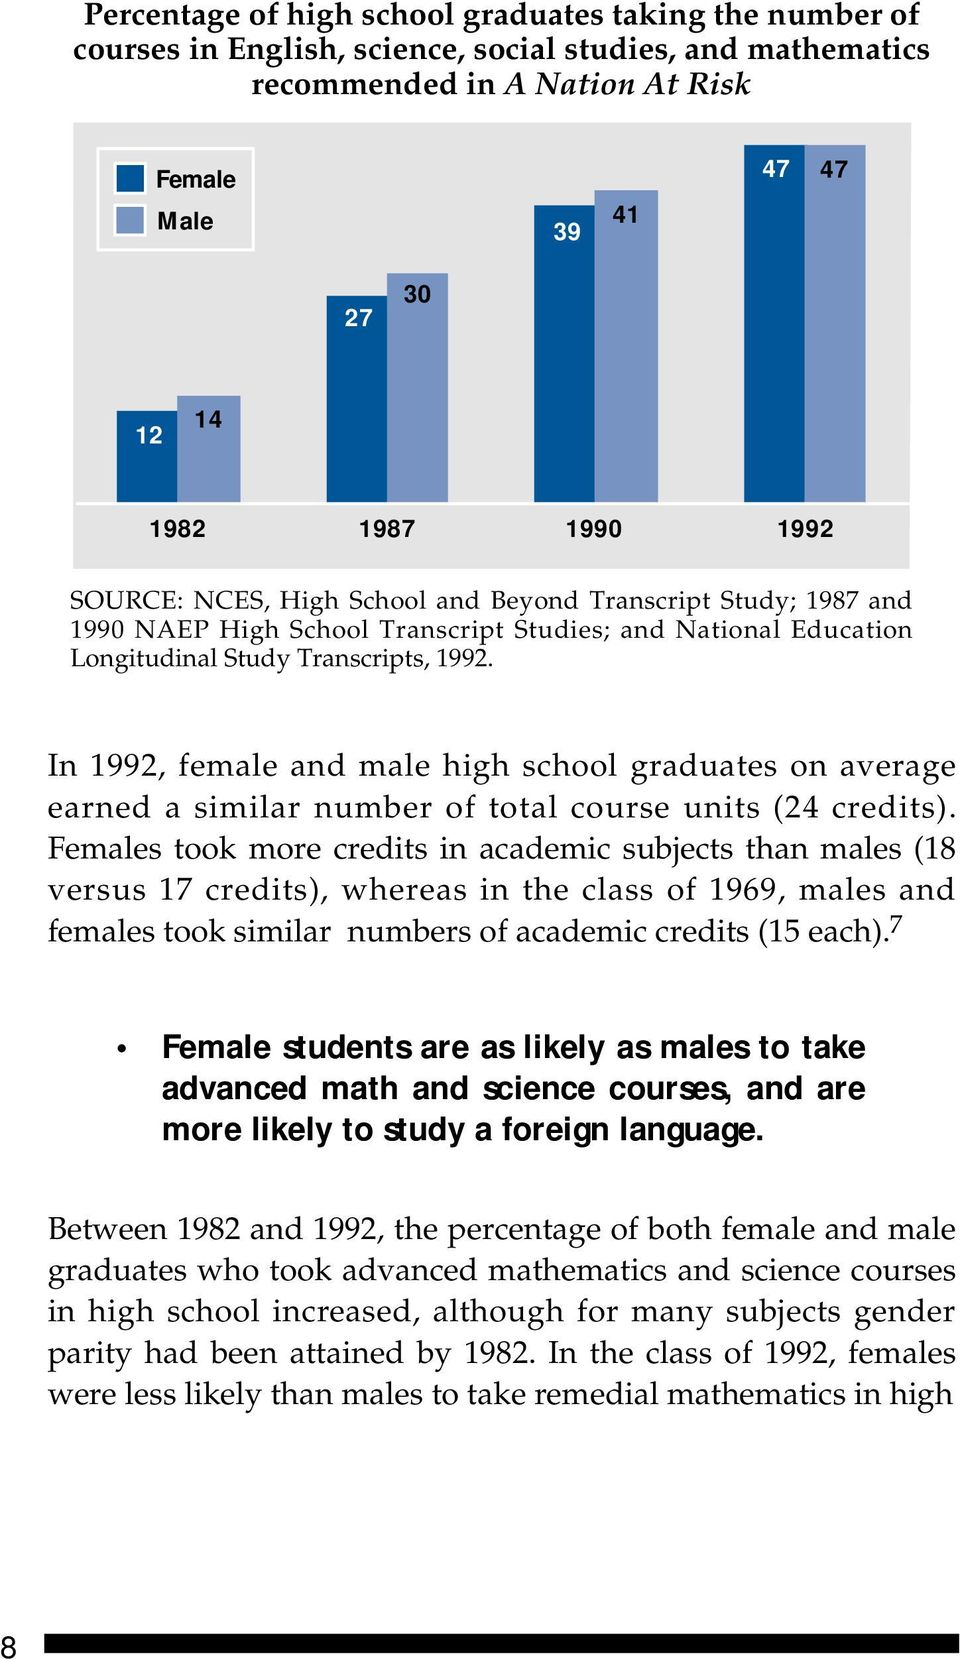 In 1992, female and male high school graduates on average earned a similar number of total course units (24 credits).